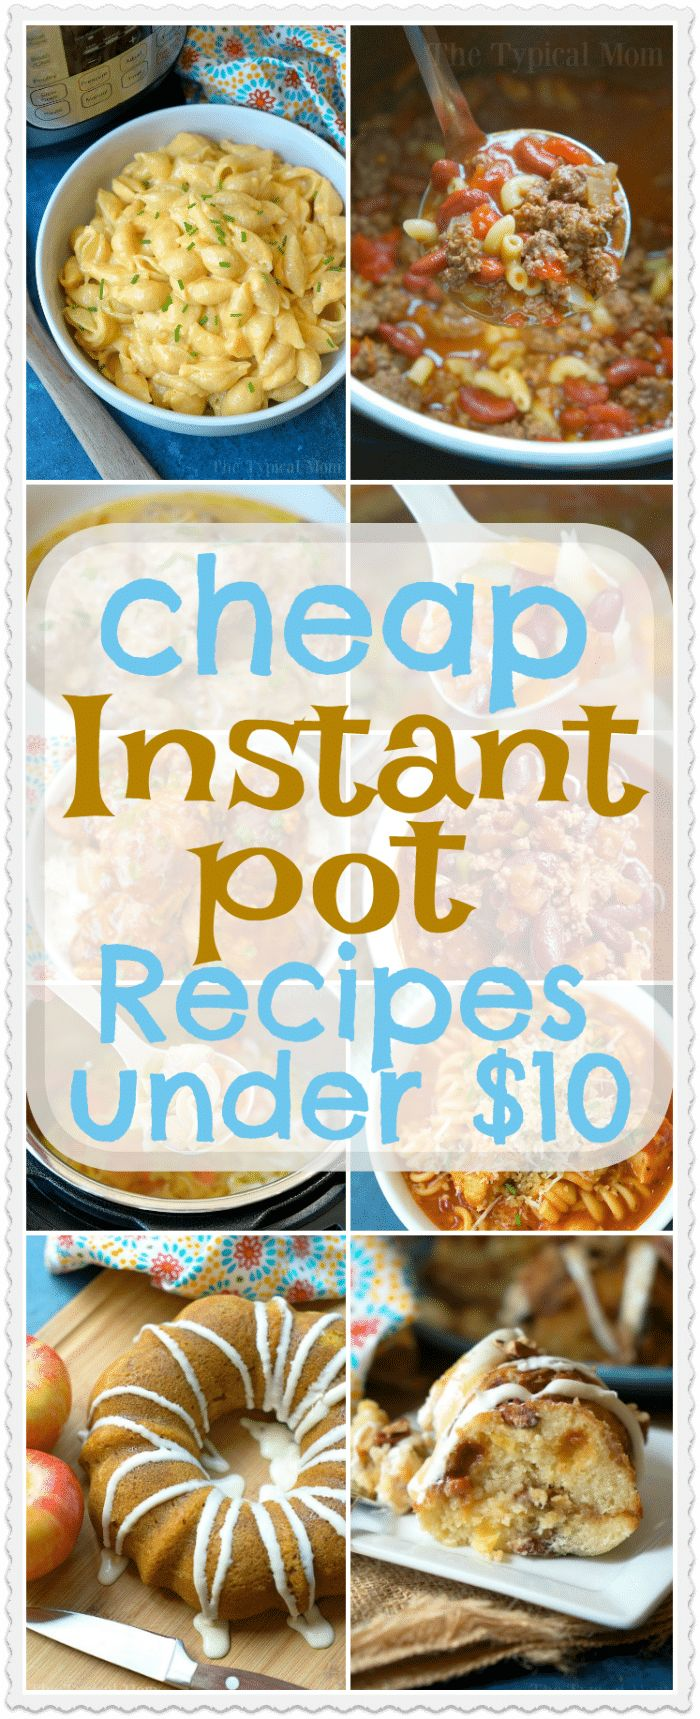 21 cheap Instant Pot recipes under $10 each that you will love! From dinners to side dishes and pressure cooker desserts too, you've got to try them all. #instantpot #pressurecooker #desserts #dinners #sidedishes #cheap #meals via @thetypicalmom